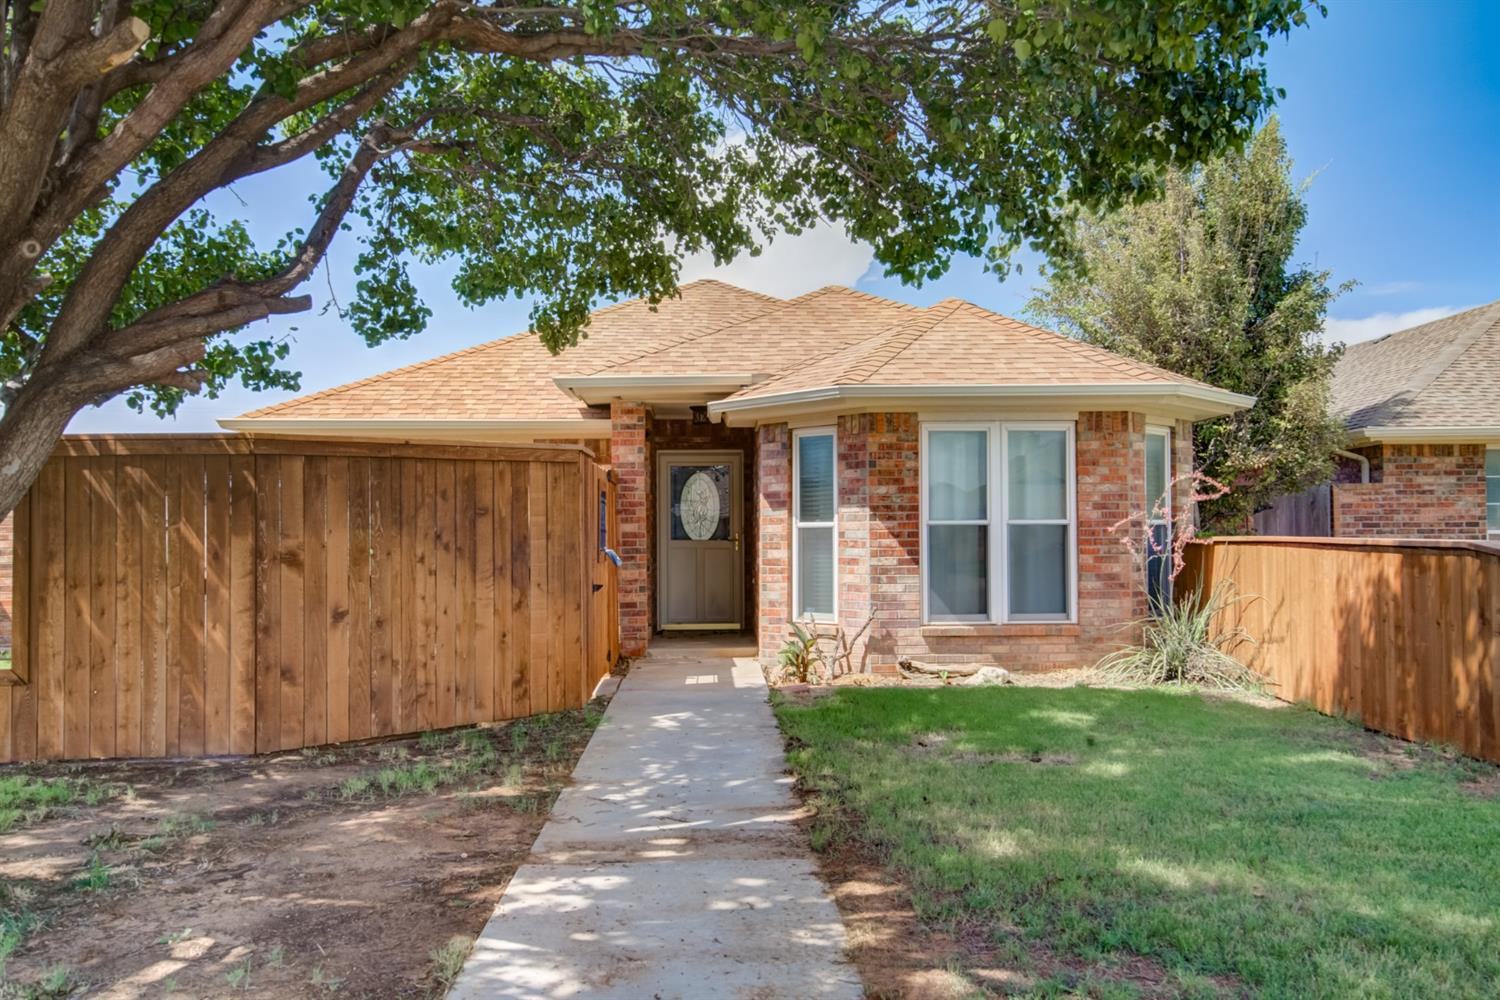 7312 60th Street, Lubbock in Lubbock County, TX 79407 Home for Sale